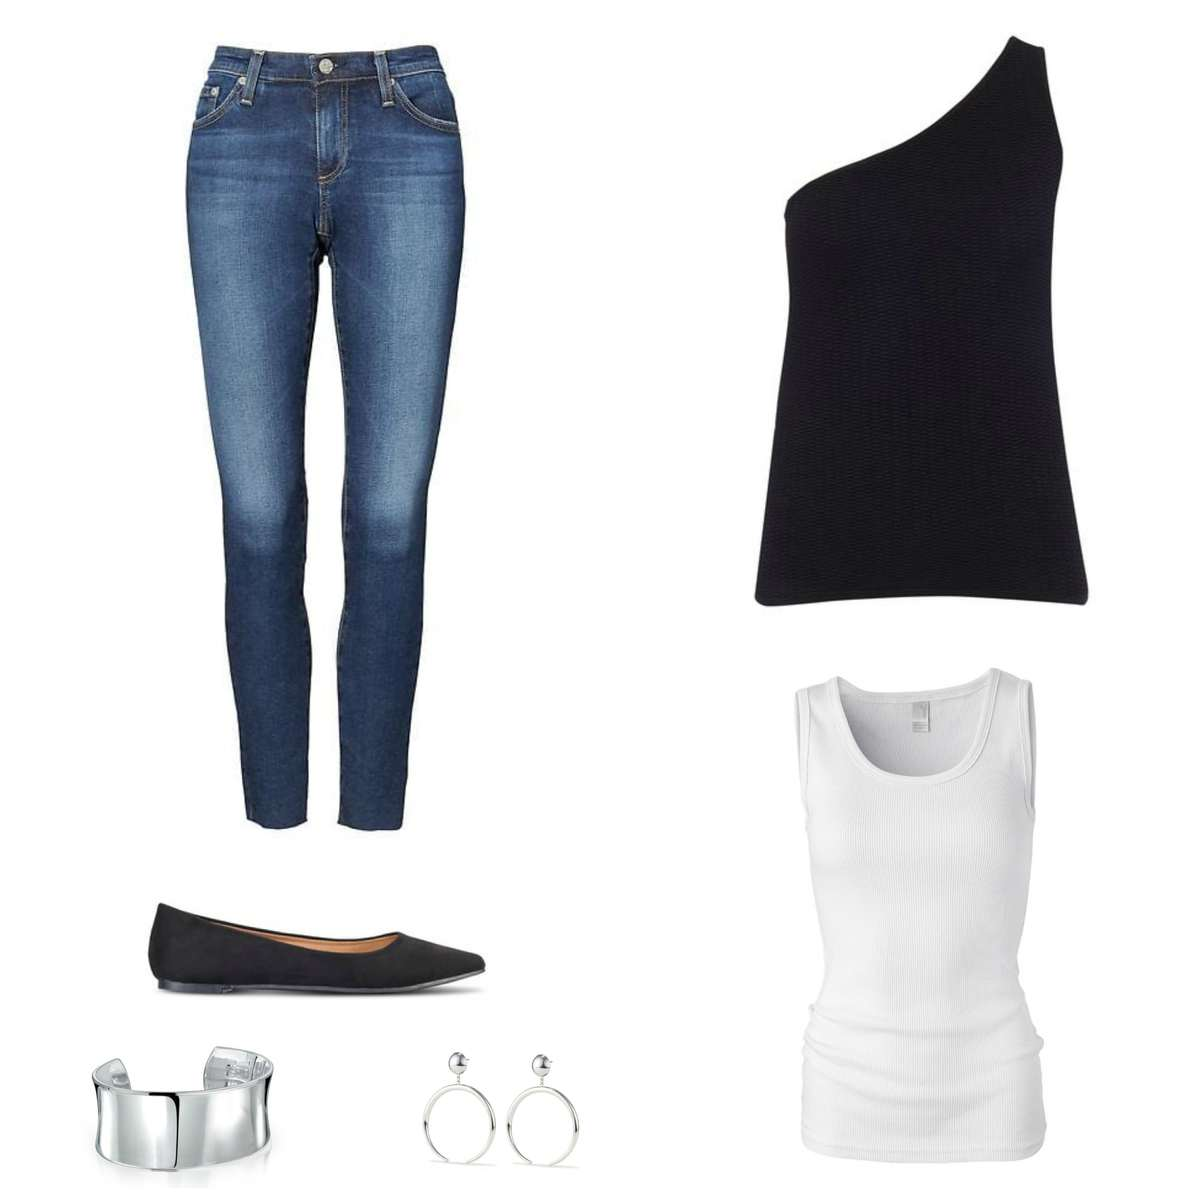 Image is of a pair of skinny jeans with a black one-shouldered sweater to be worn over a white tank top, black flats, silver cuff bracelet and silver Factory Hoop earrings from Jenny Bird.